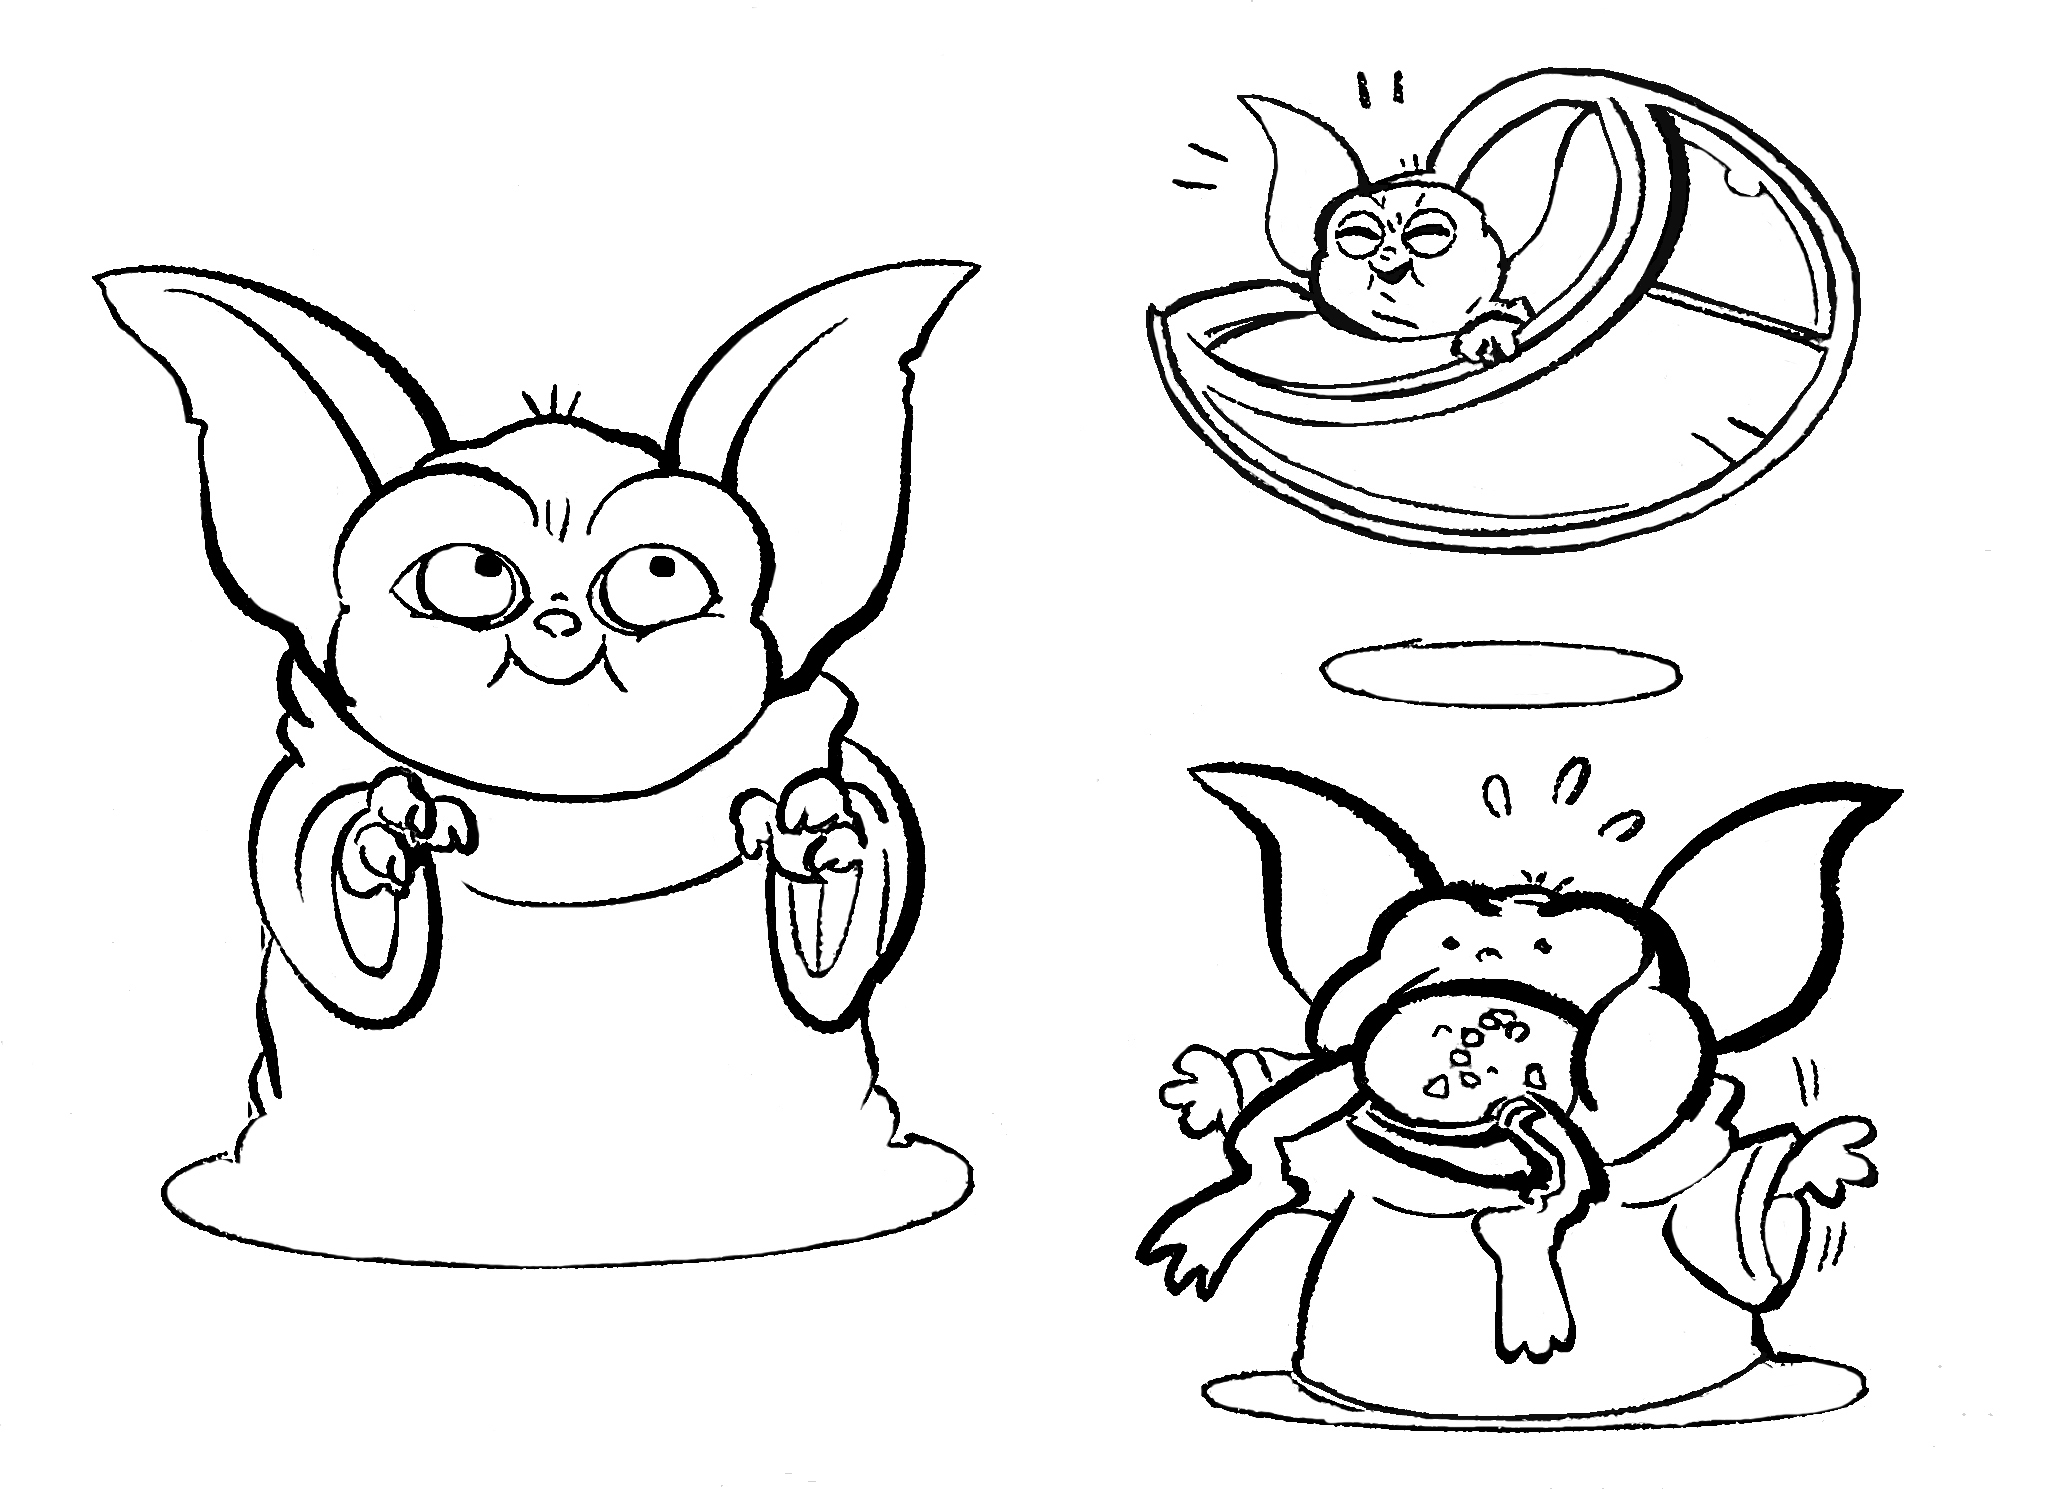 Baby Yoda daily Coloring Pages